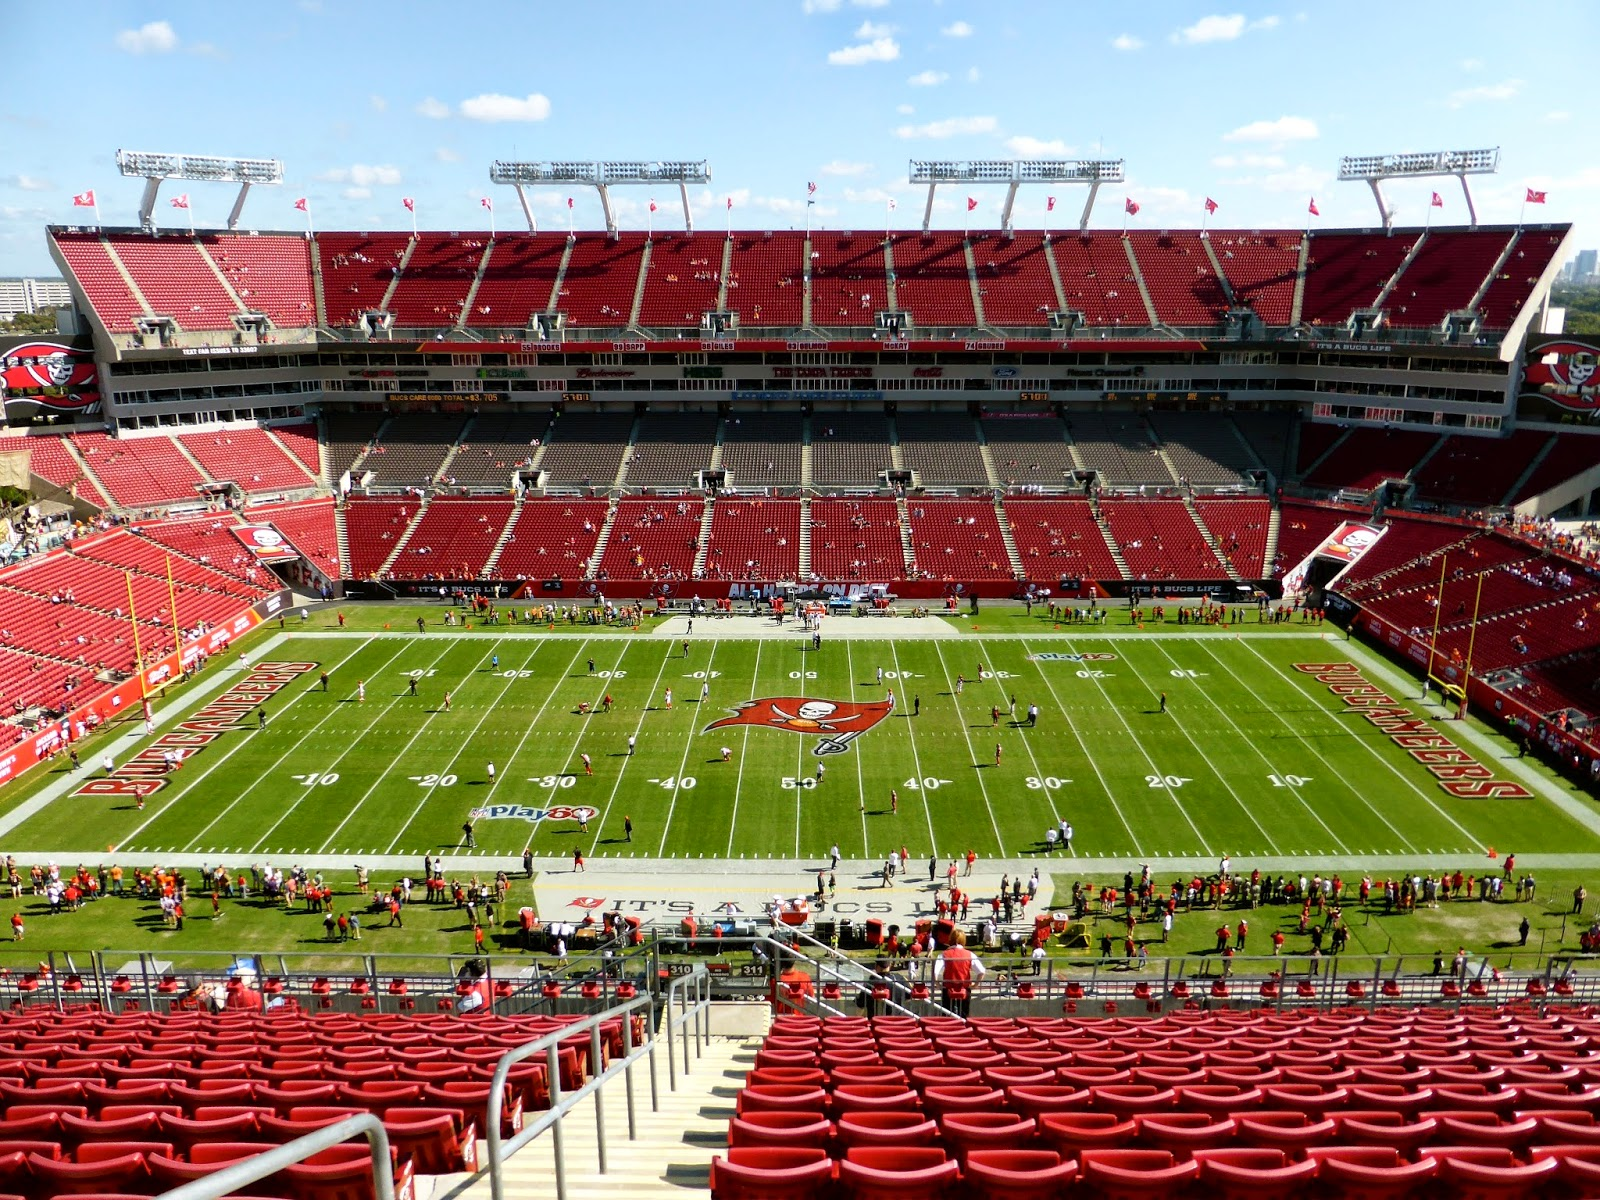 Jerseys NFL Sale - Sports Road Trips: Cincinnati Bengals 14 at Tampa Bay Buccaneers ...